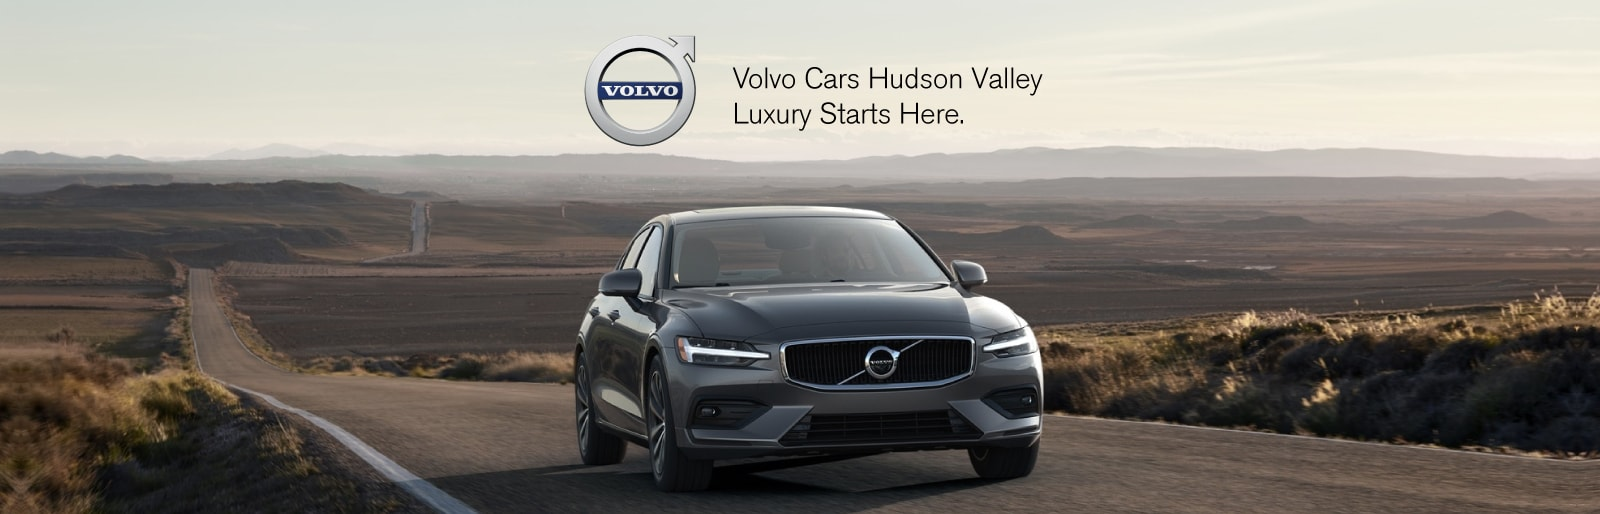 Volvo S60 lease deal image